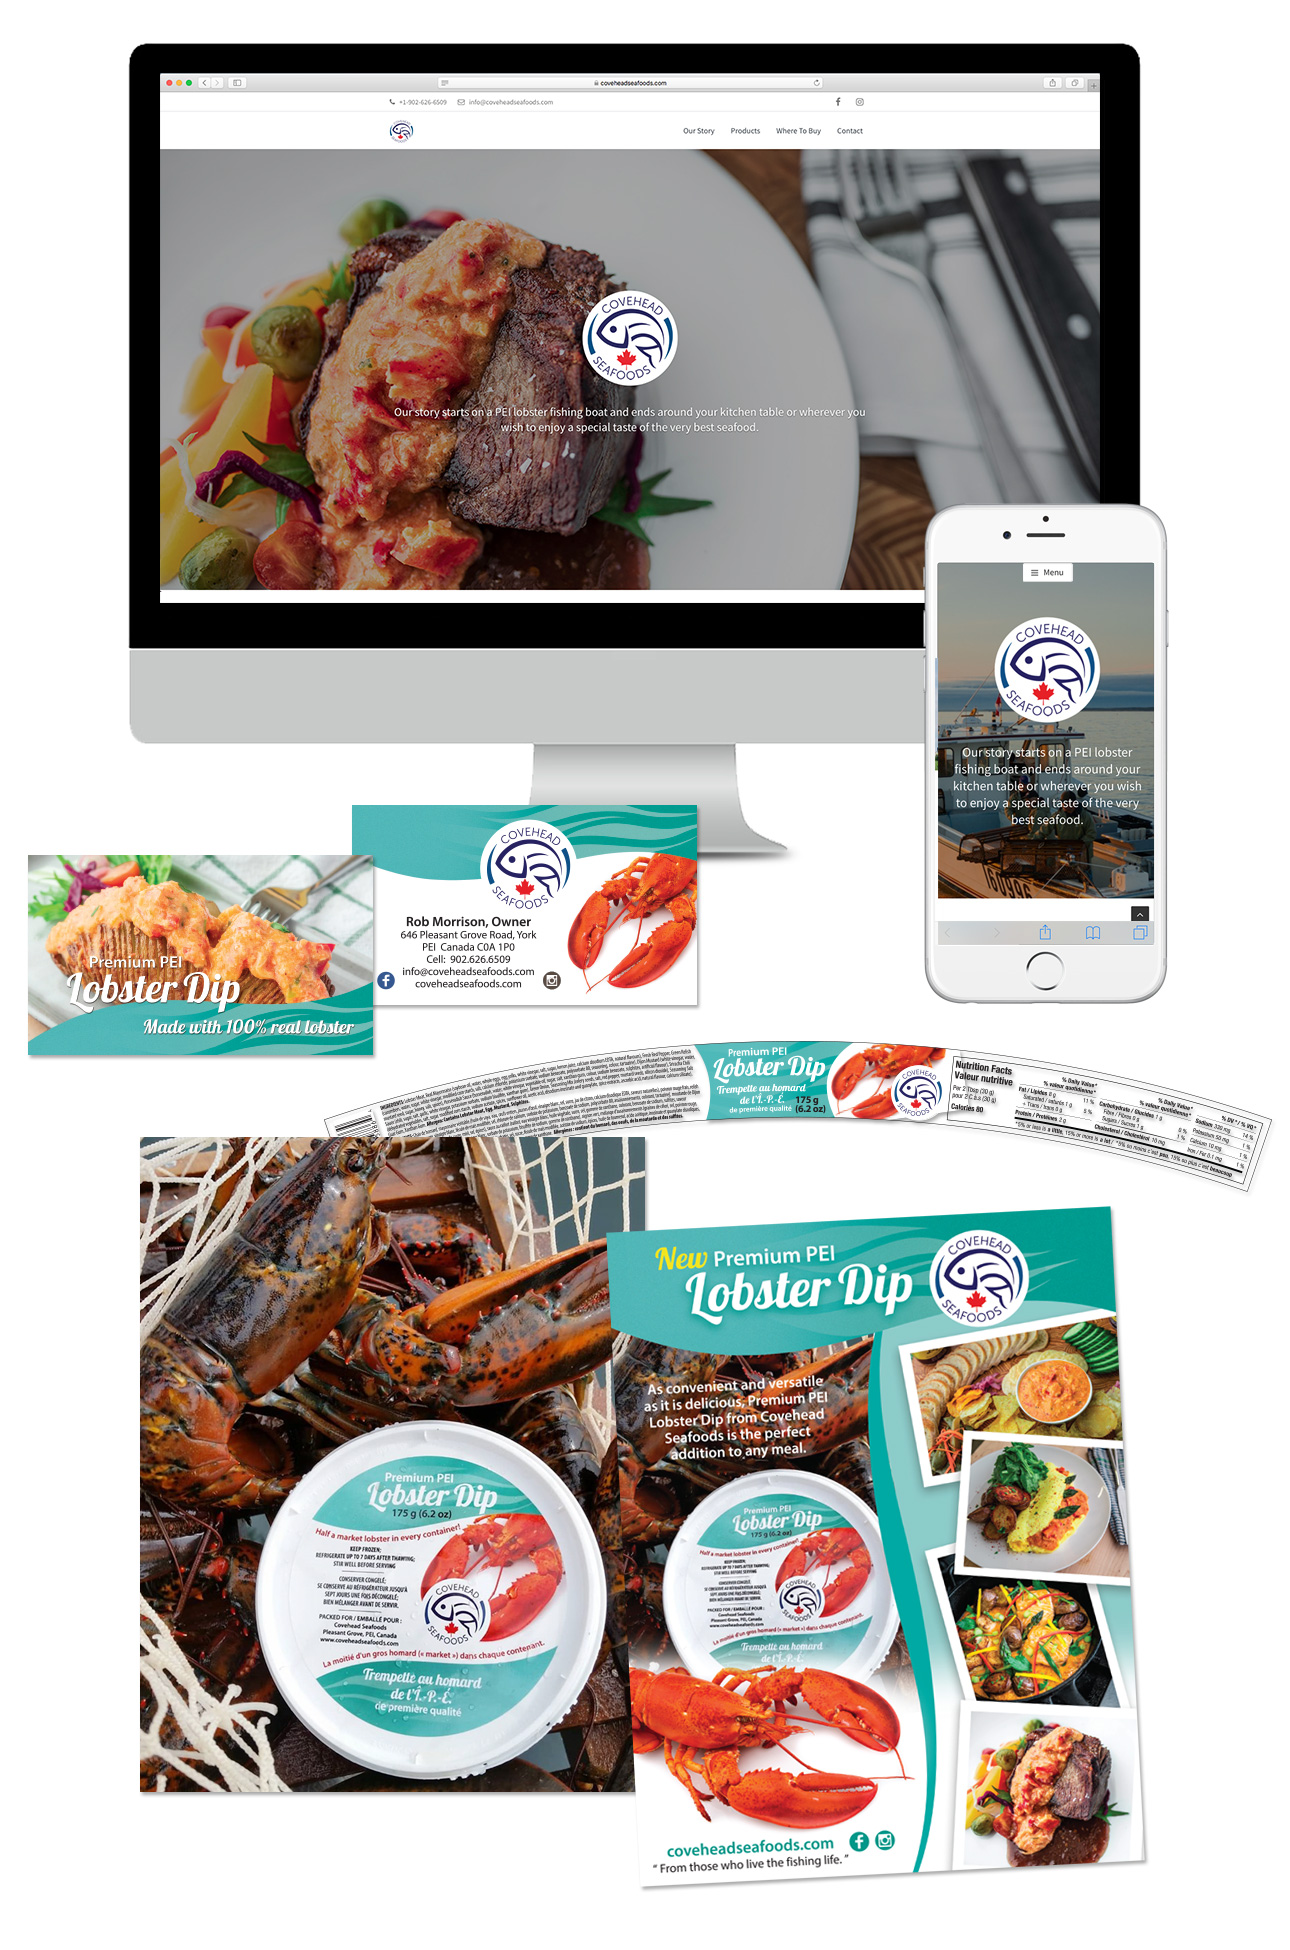 Covehead Seafoods